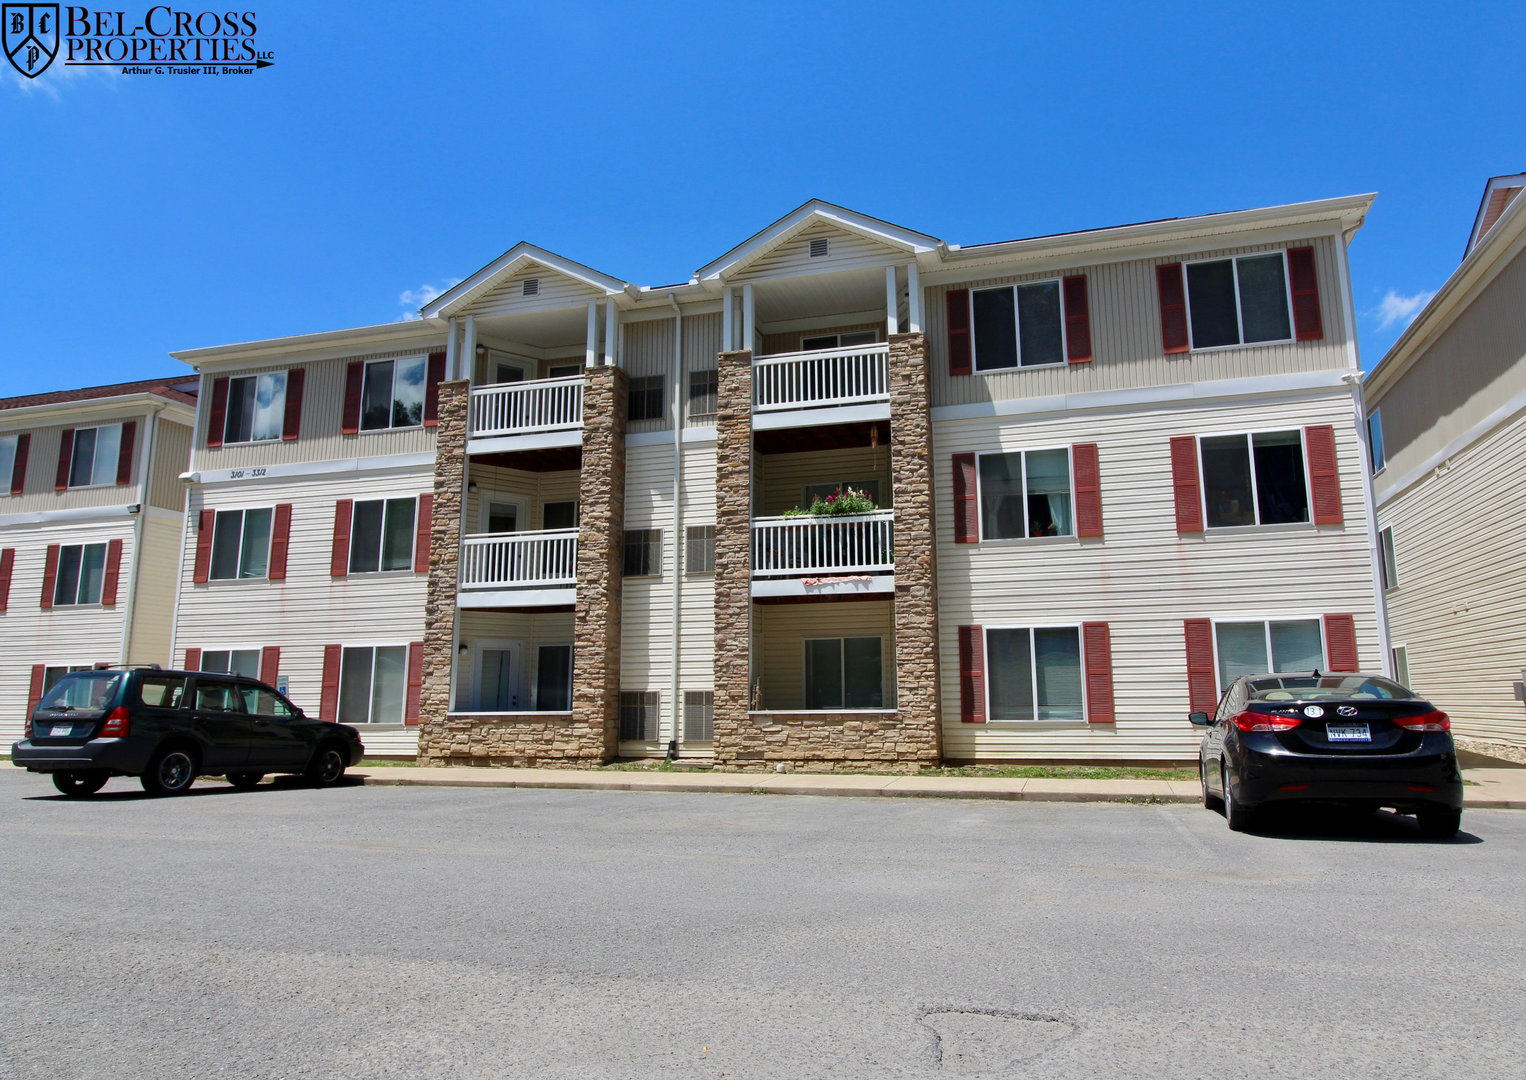 One Bedroom Apartments For Rent In Morgantown Wv